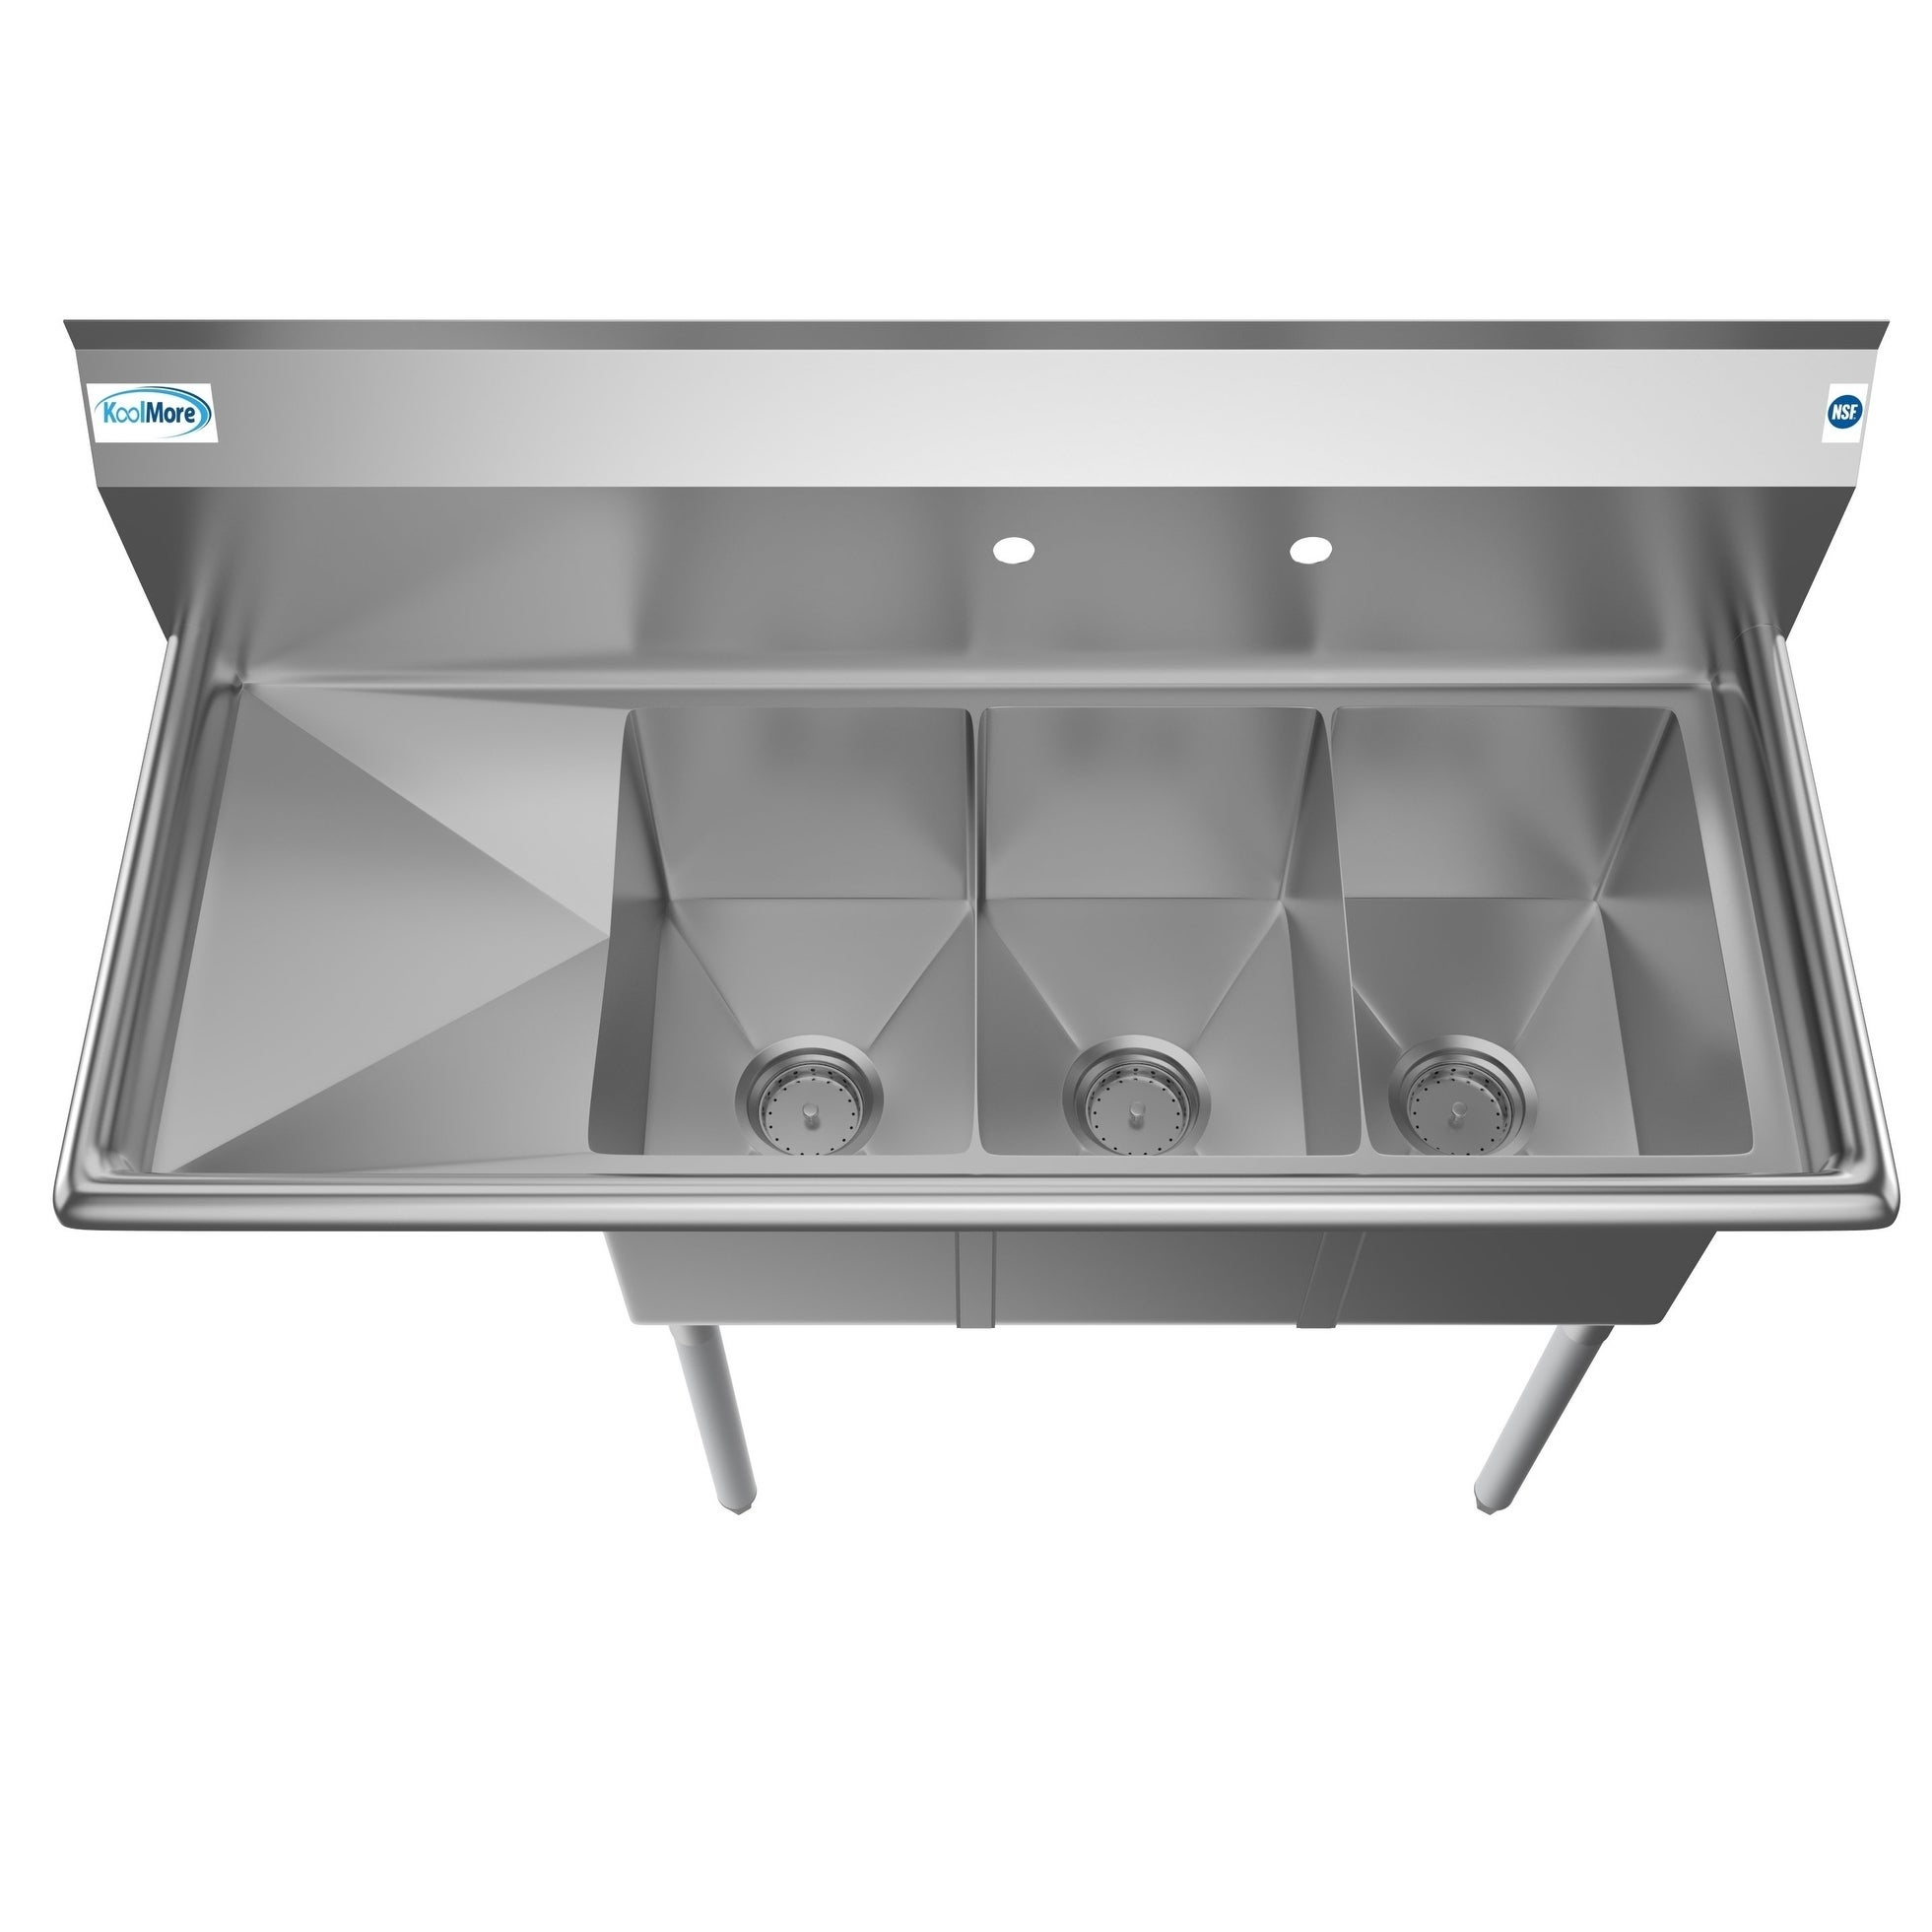 KoolMore 45-Inch Three Compartment Stainless Steel Commercial Kitchen Sink